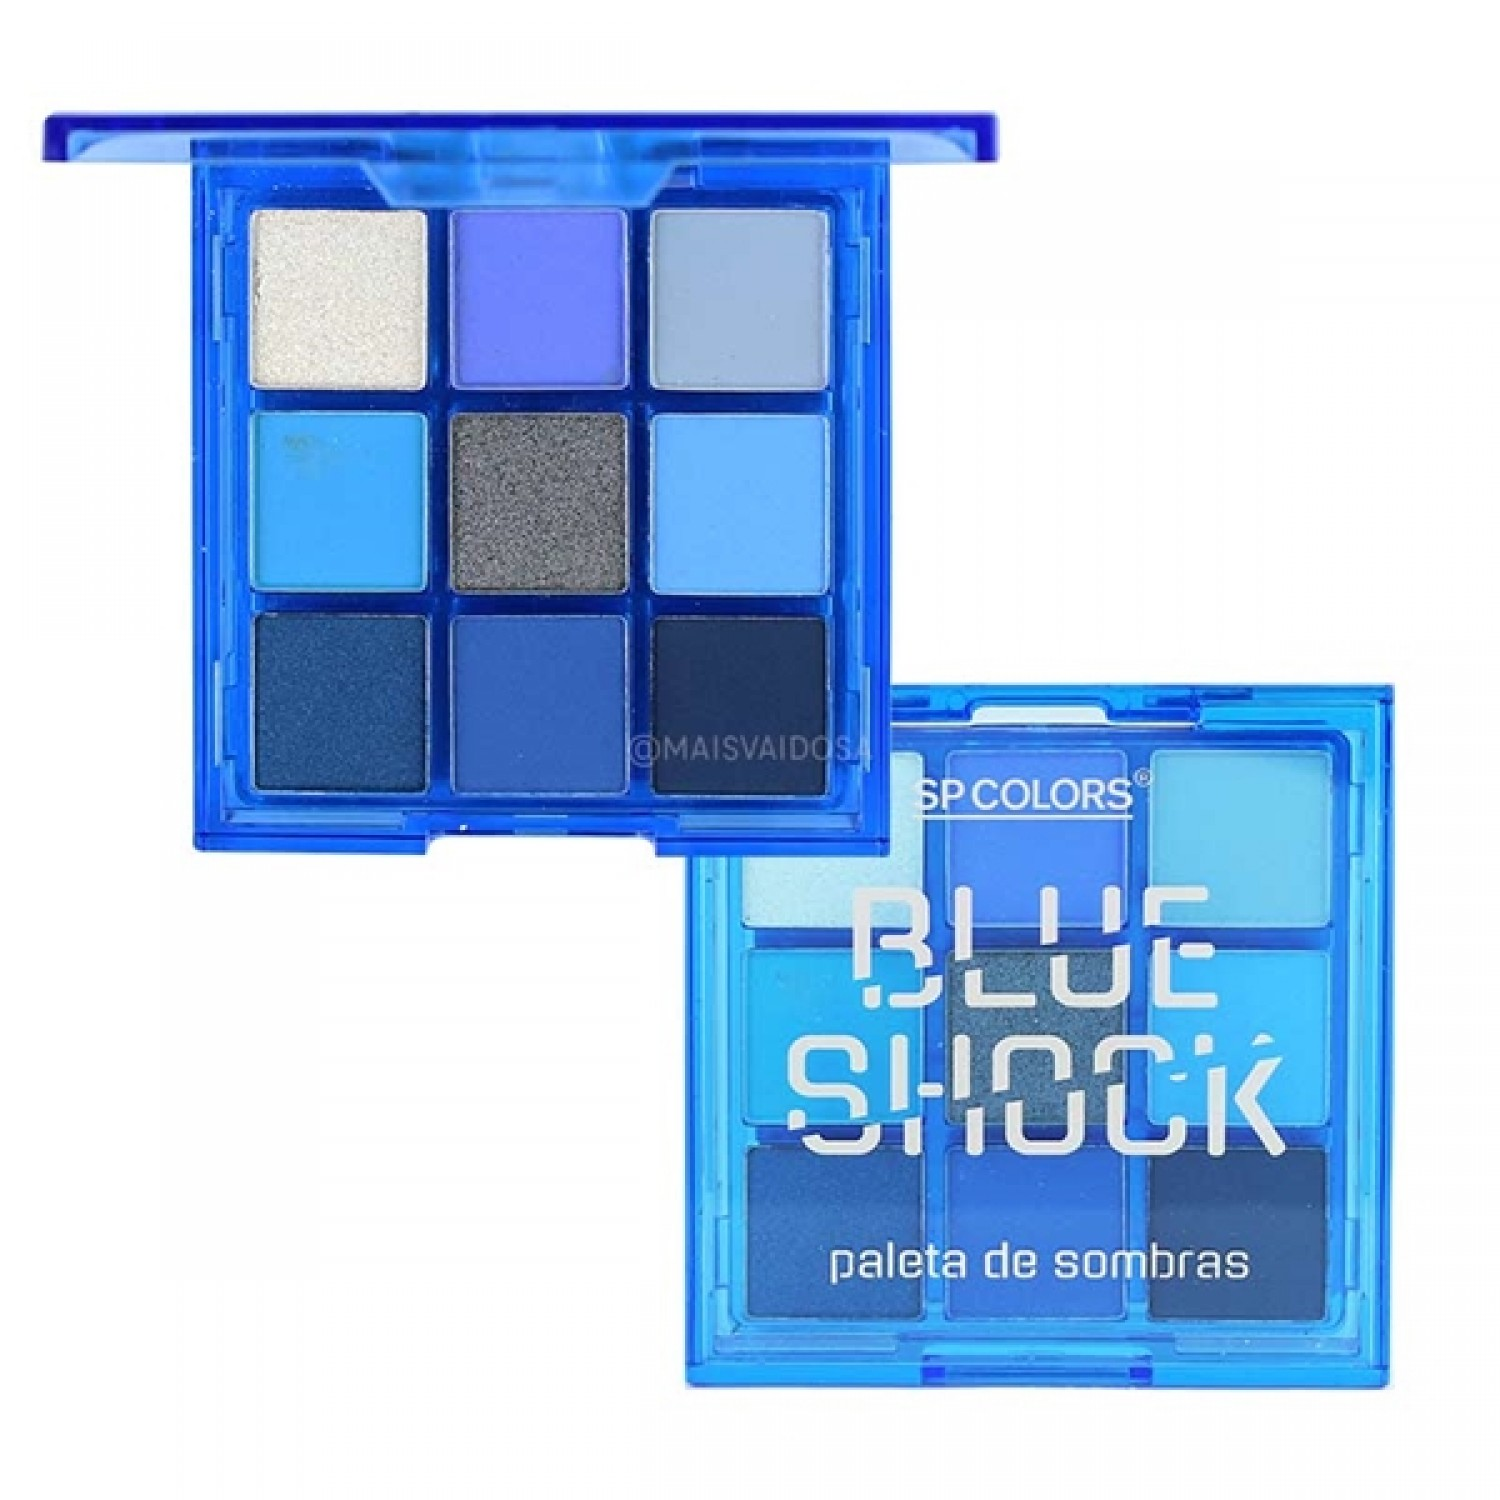 Paleta de Sombras Blue Shock - Sp Colors